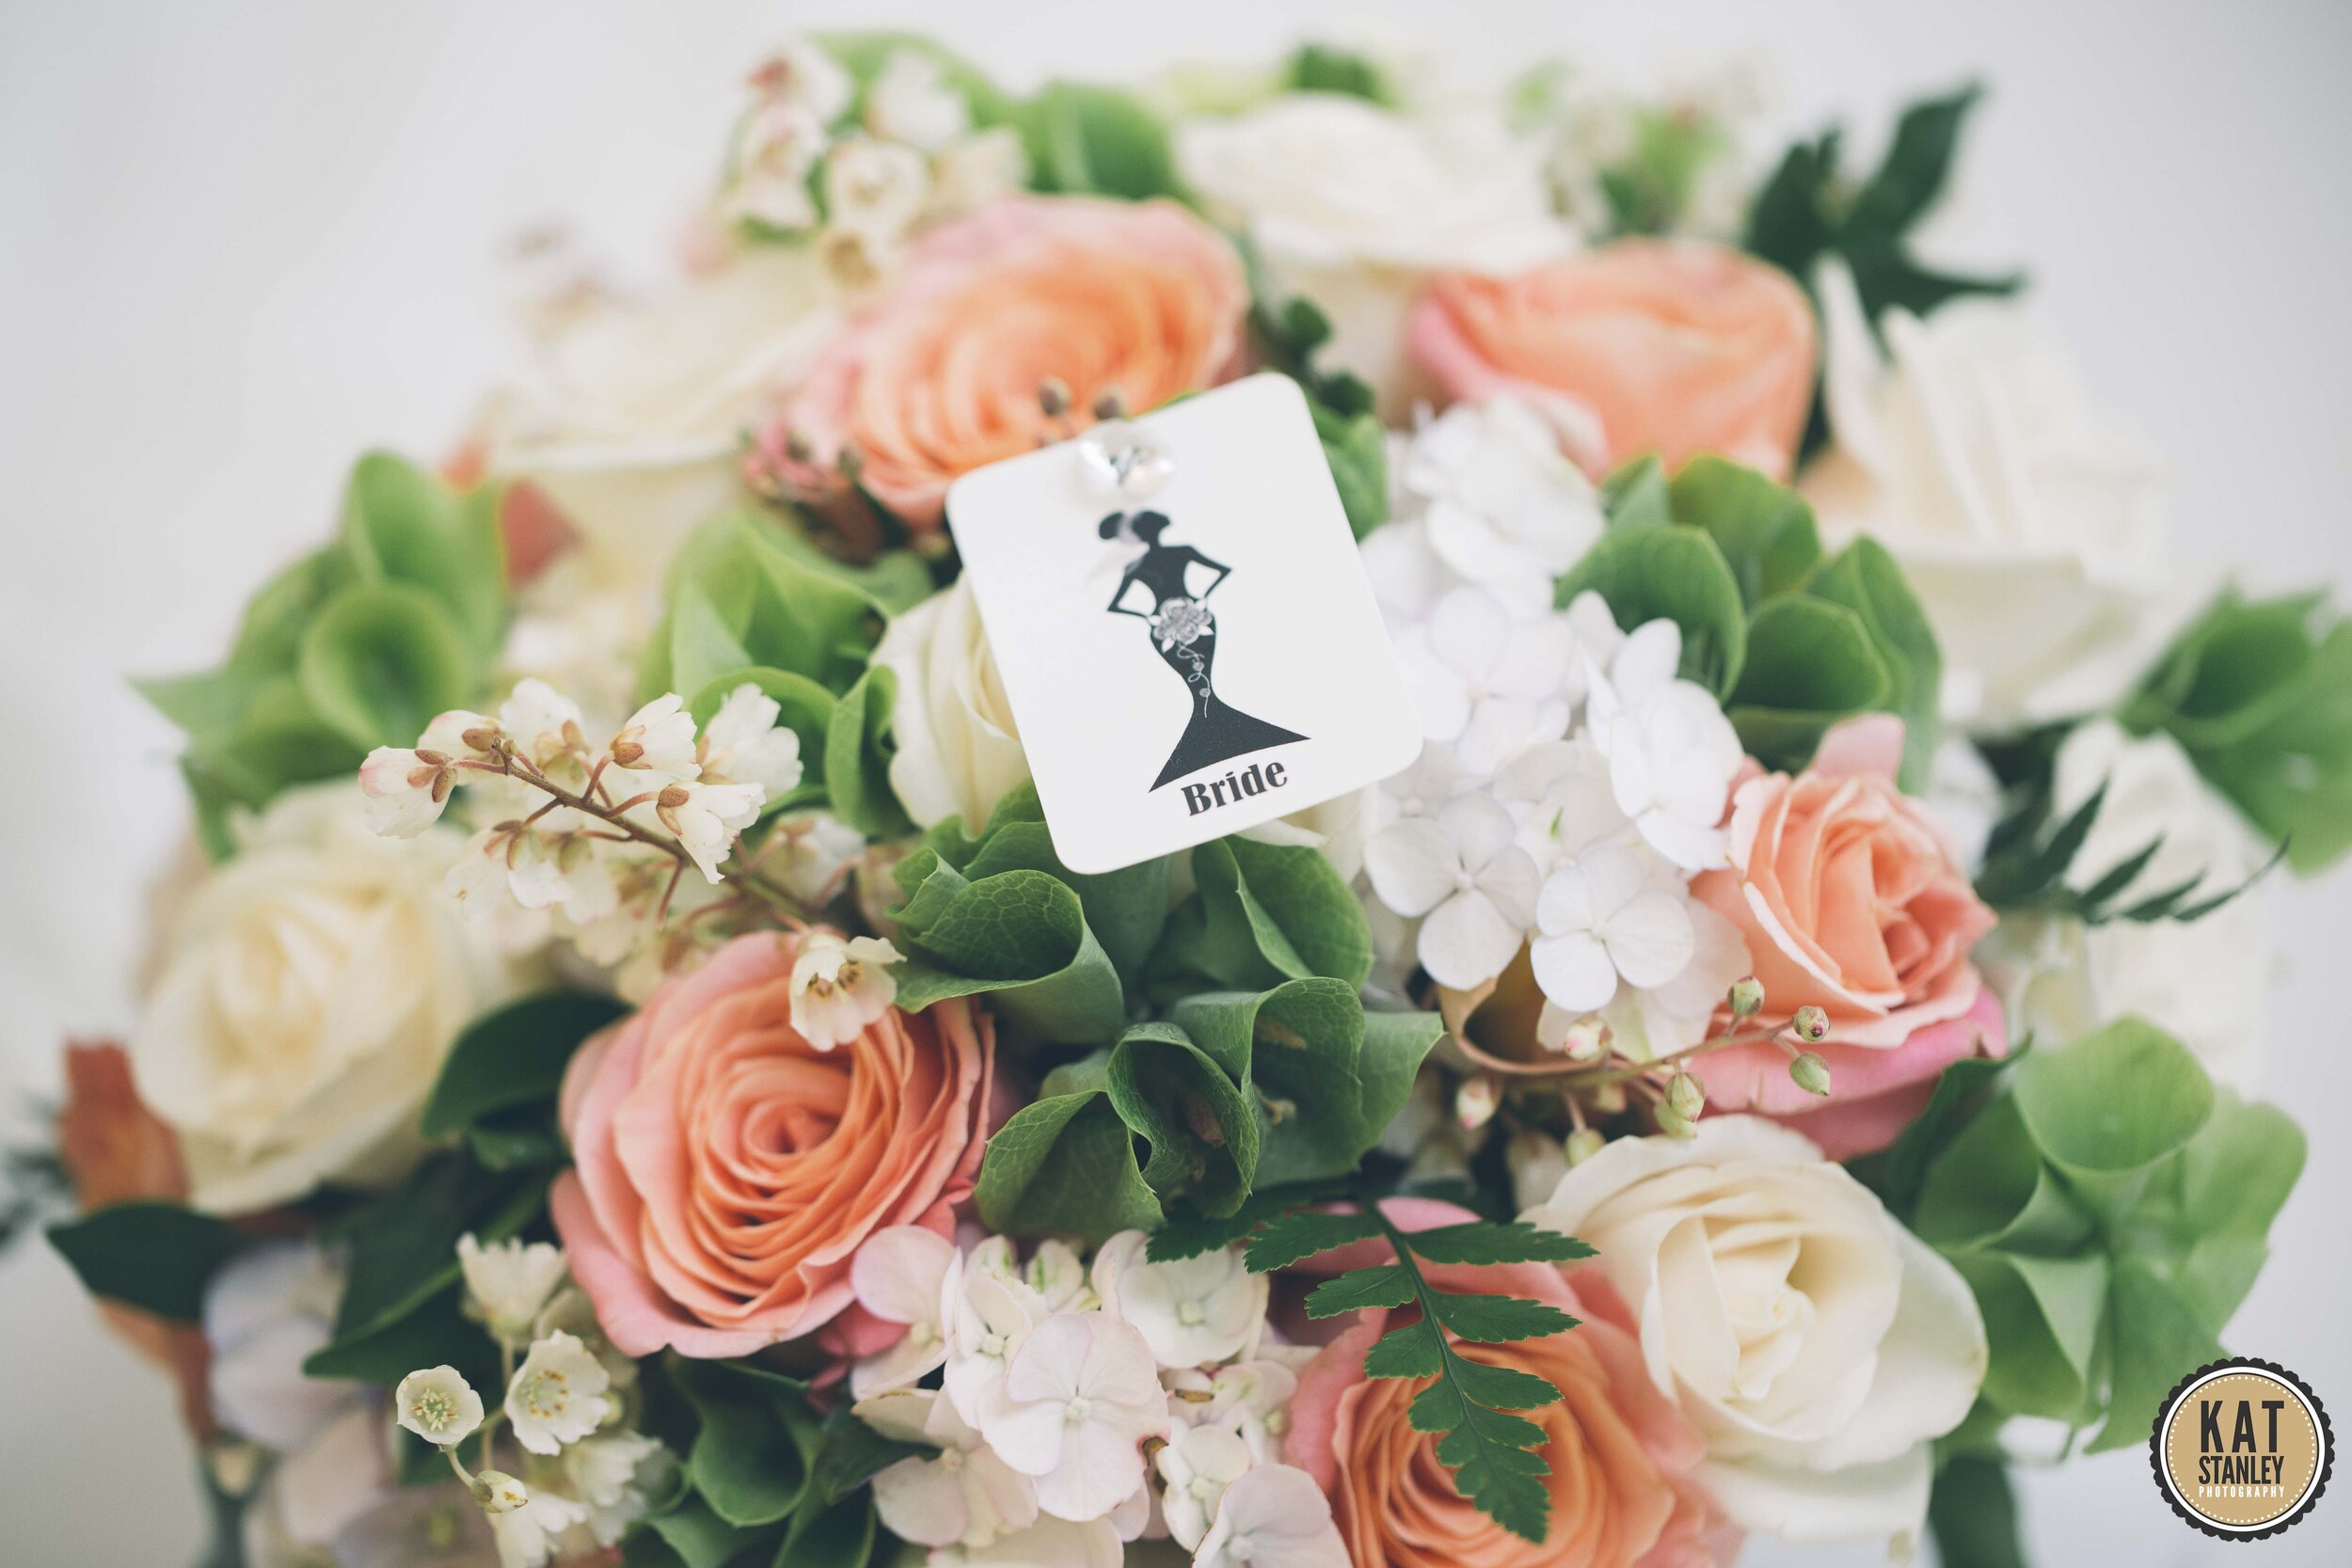 Are you happy to organise all your wedding flowers via email and phone, with no face to face consultations? -